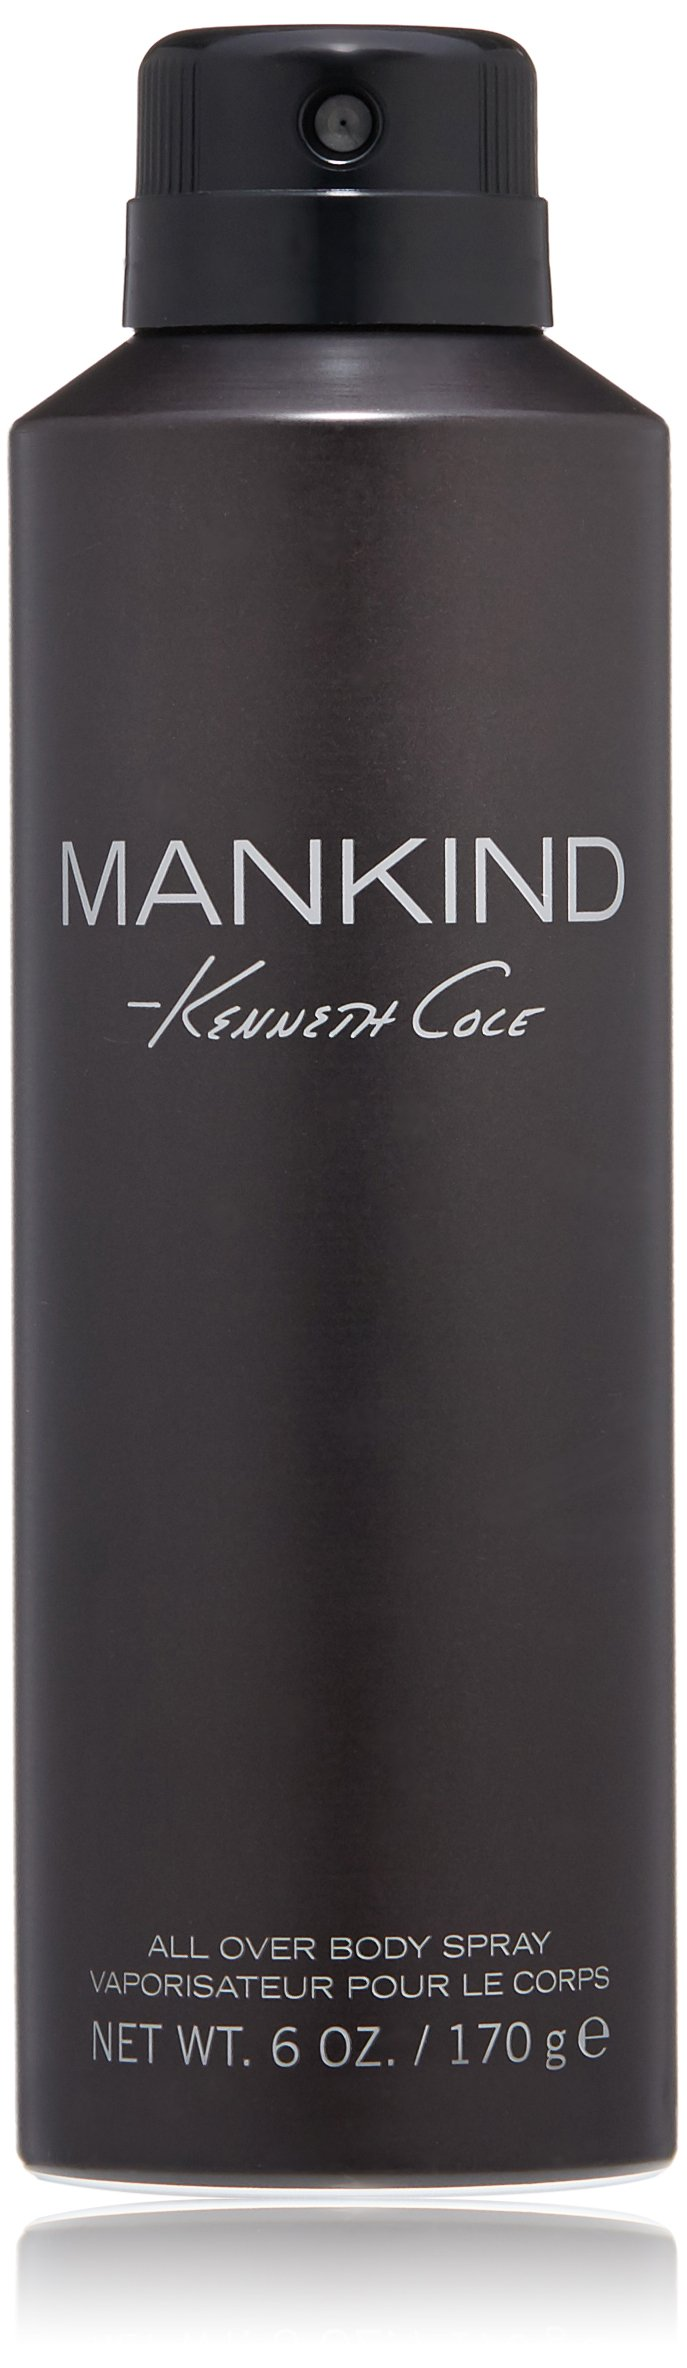 Kenneth Cole Mankind Body Spray, 6.0 Oz